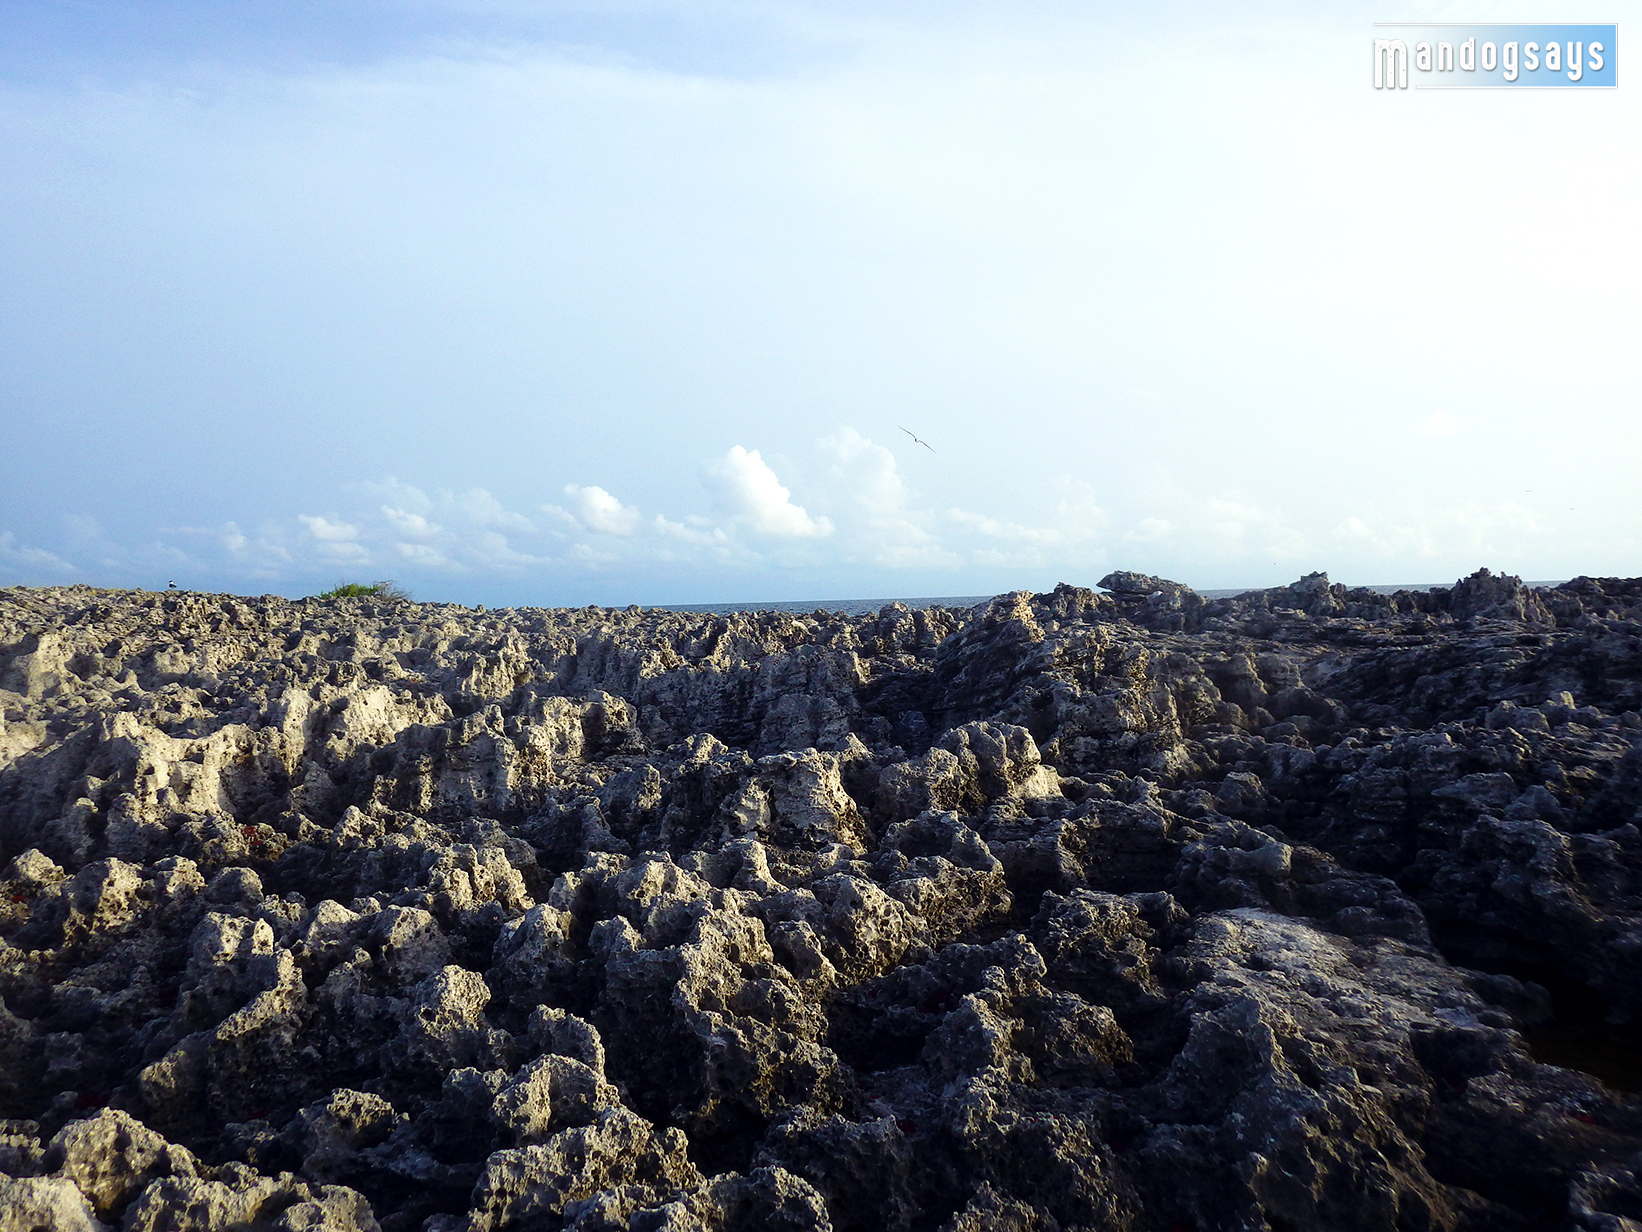 Once thriving corals existed on these limestone structures